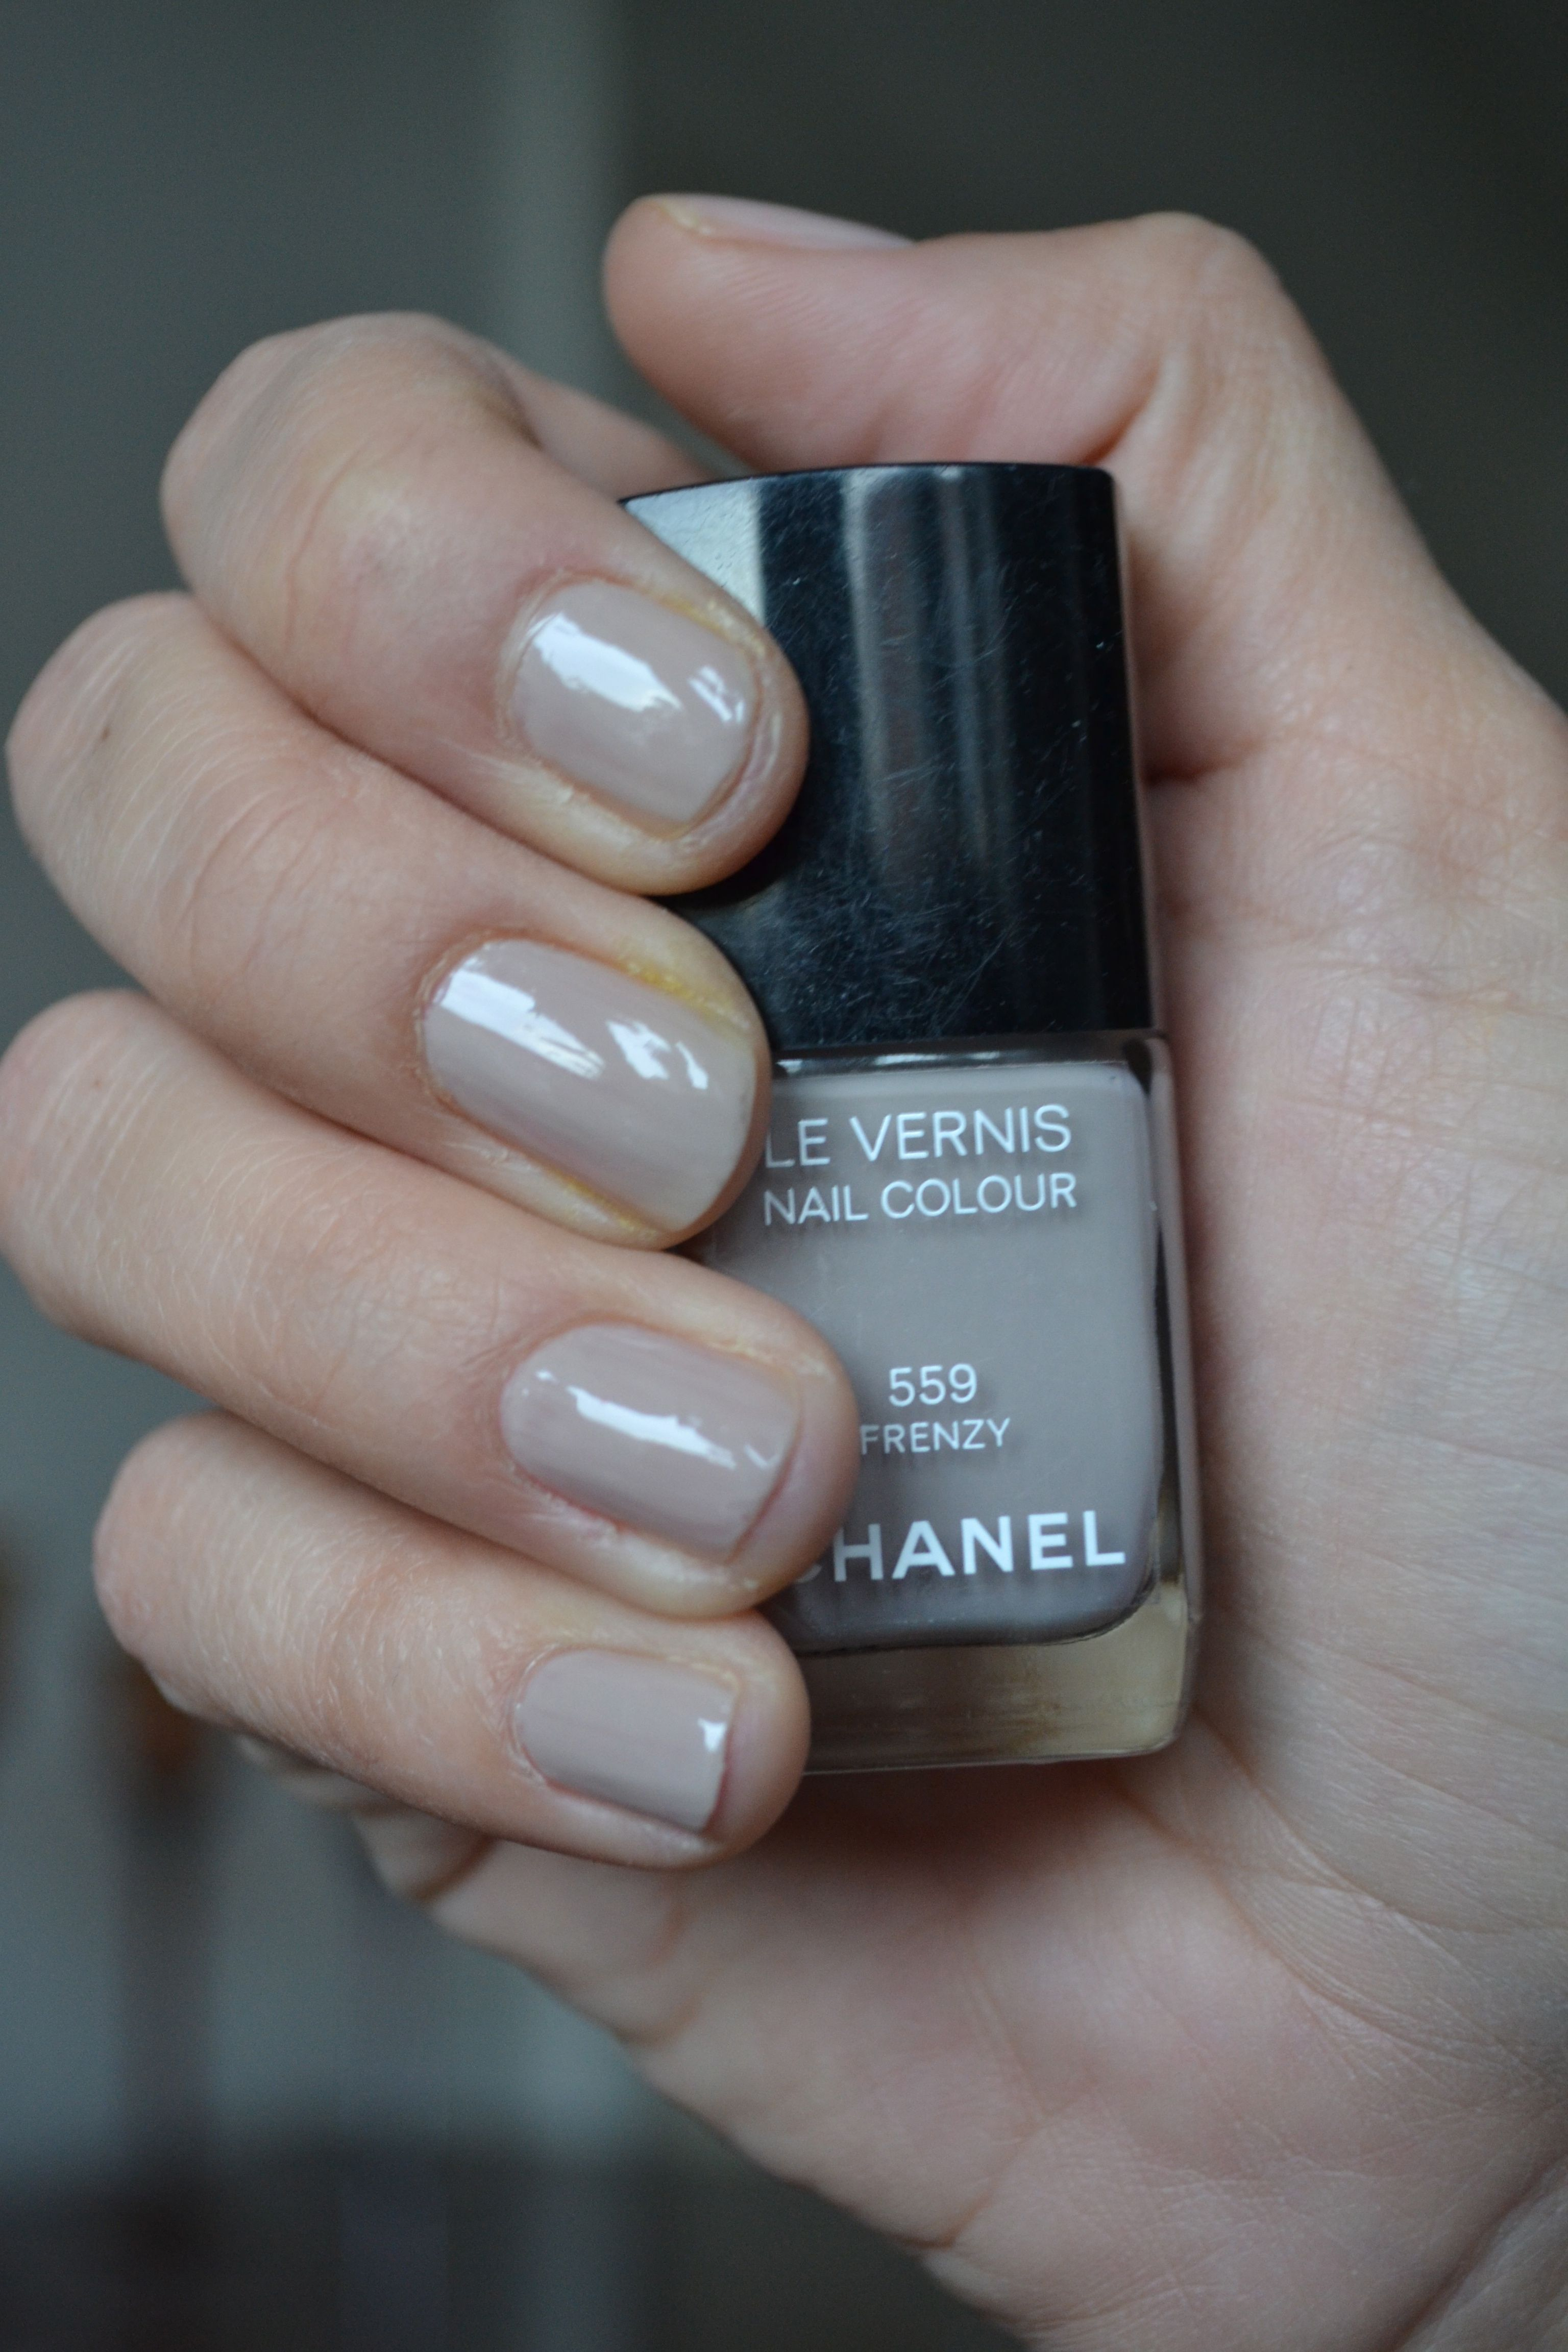 Best Chanel Nail Polishes Our Top 10 Grey Nail Polish